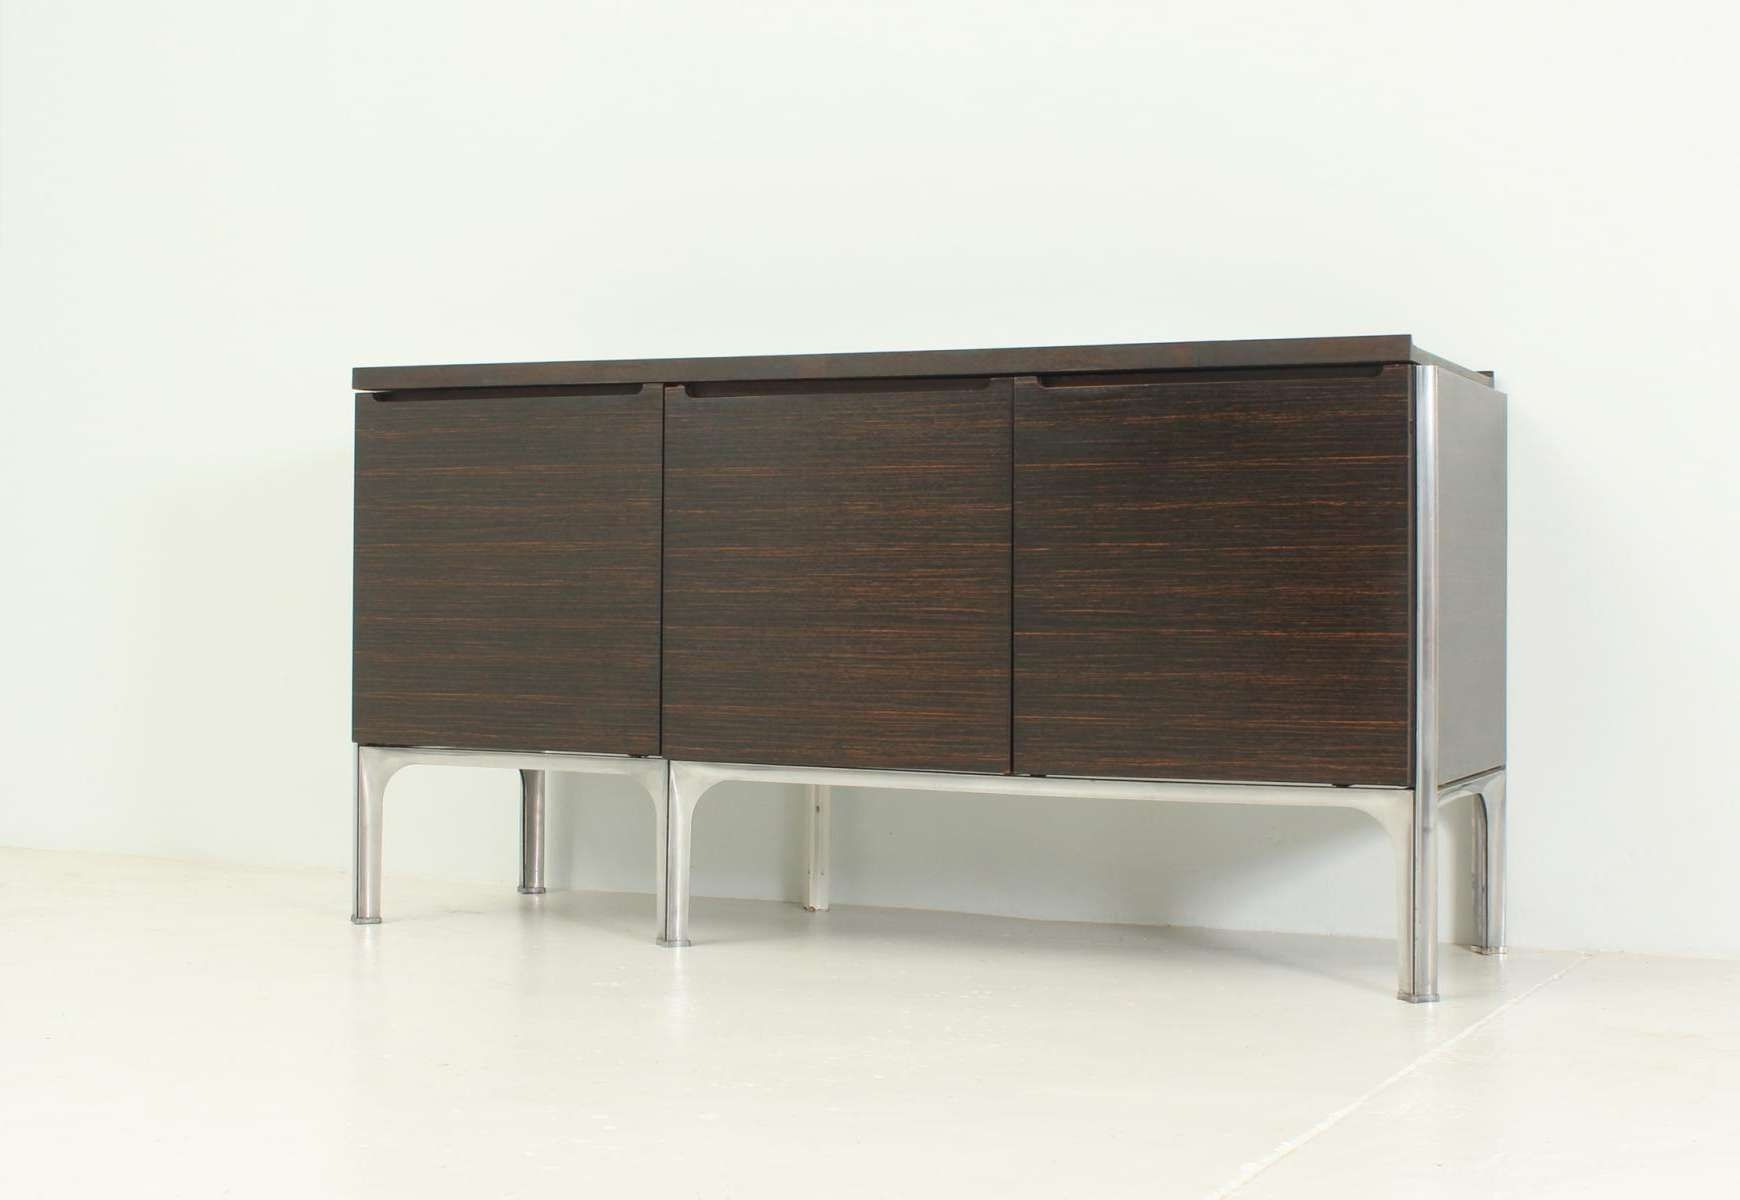 Macassar Ebony Wood Sideboardraymond Loewy For Df 2000 For In Affinity Sideboards (View 9 of 20)